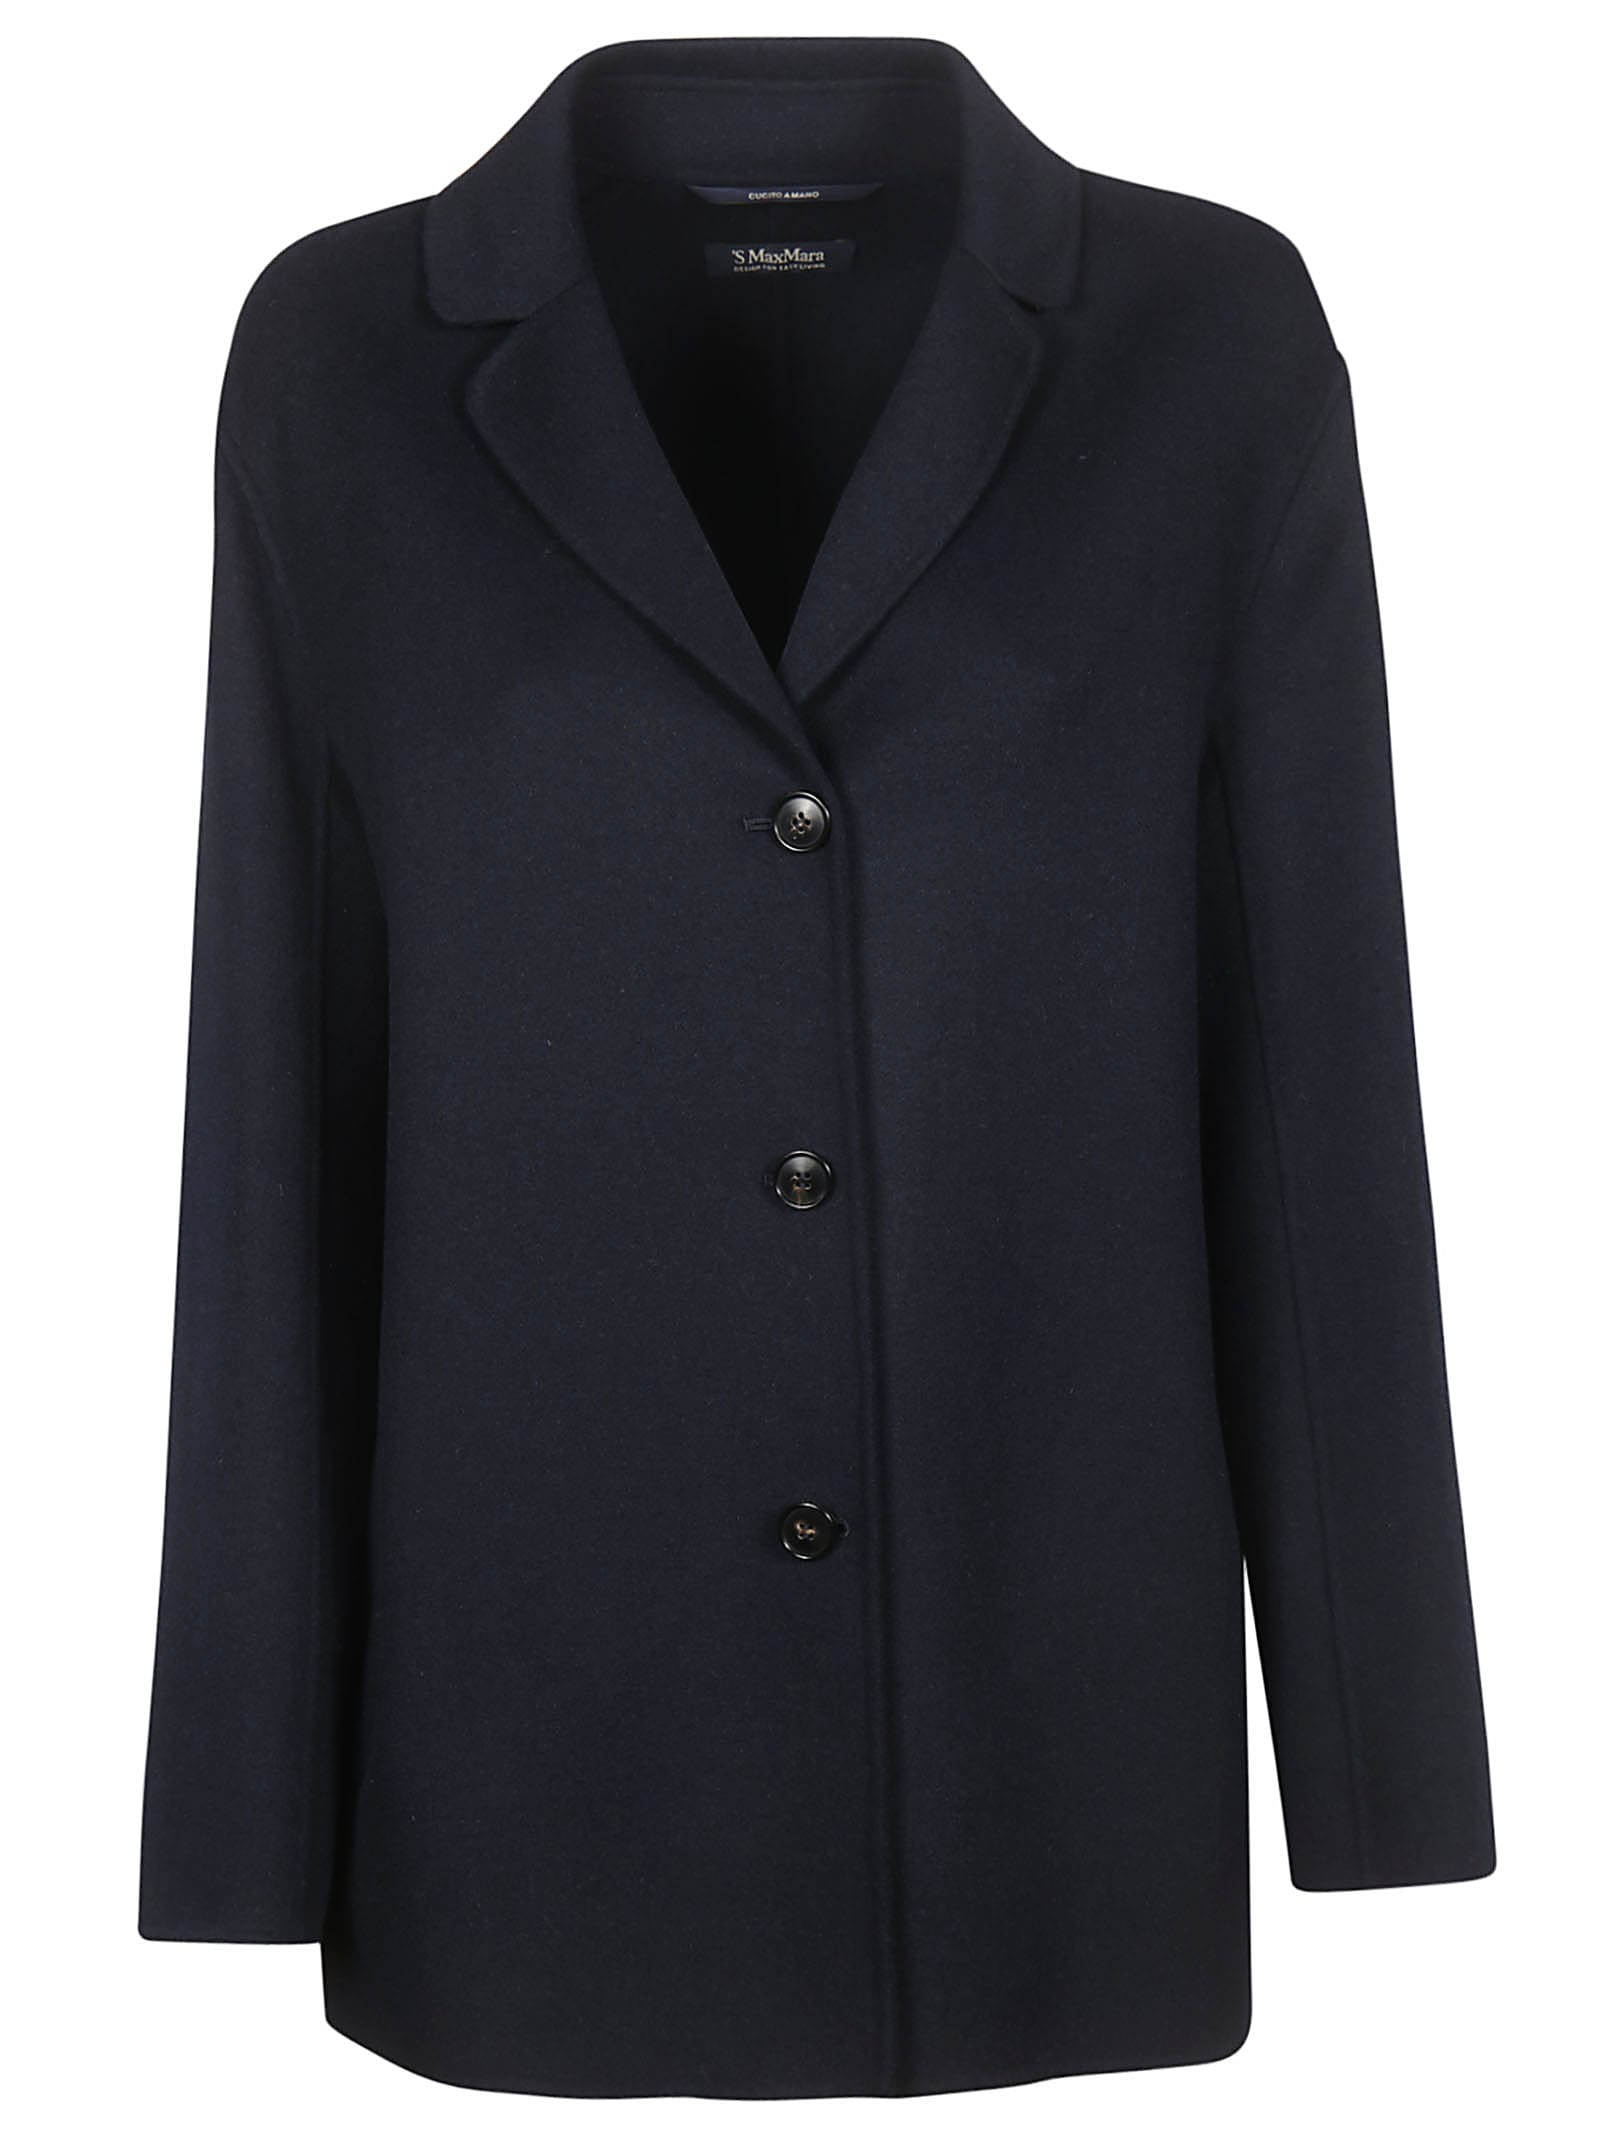 S Max Mara Here is The Cube Biada Jacket